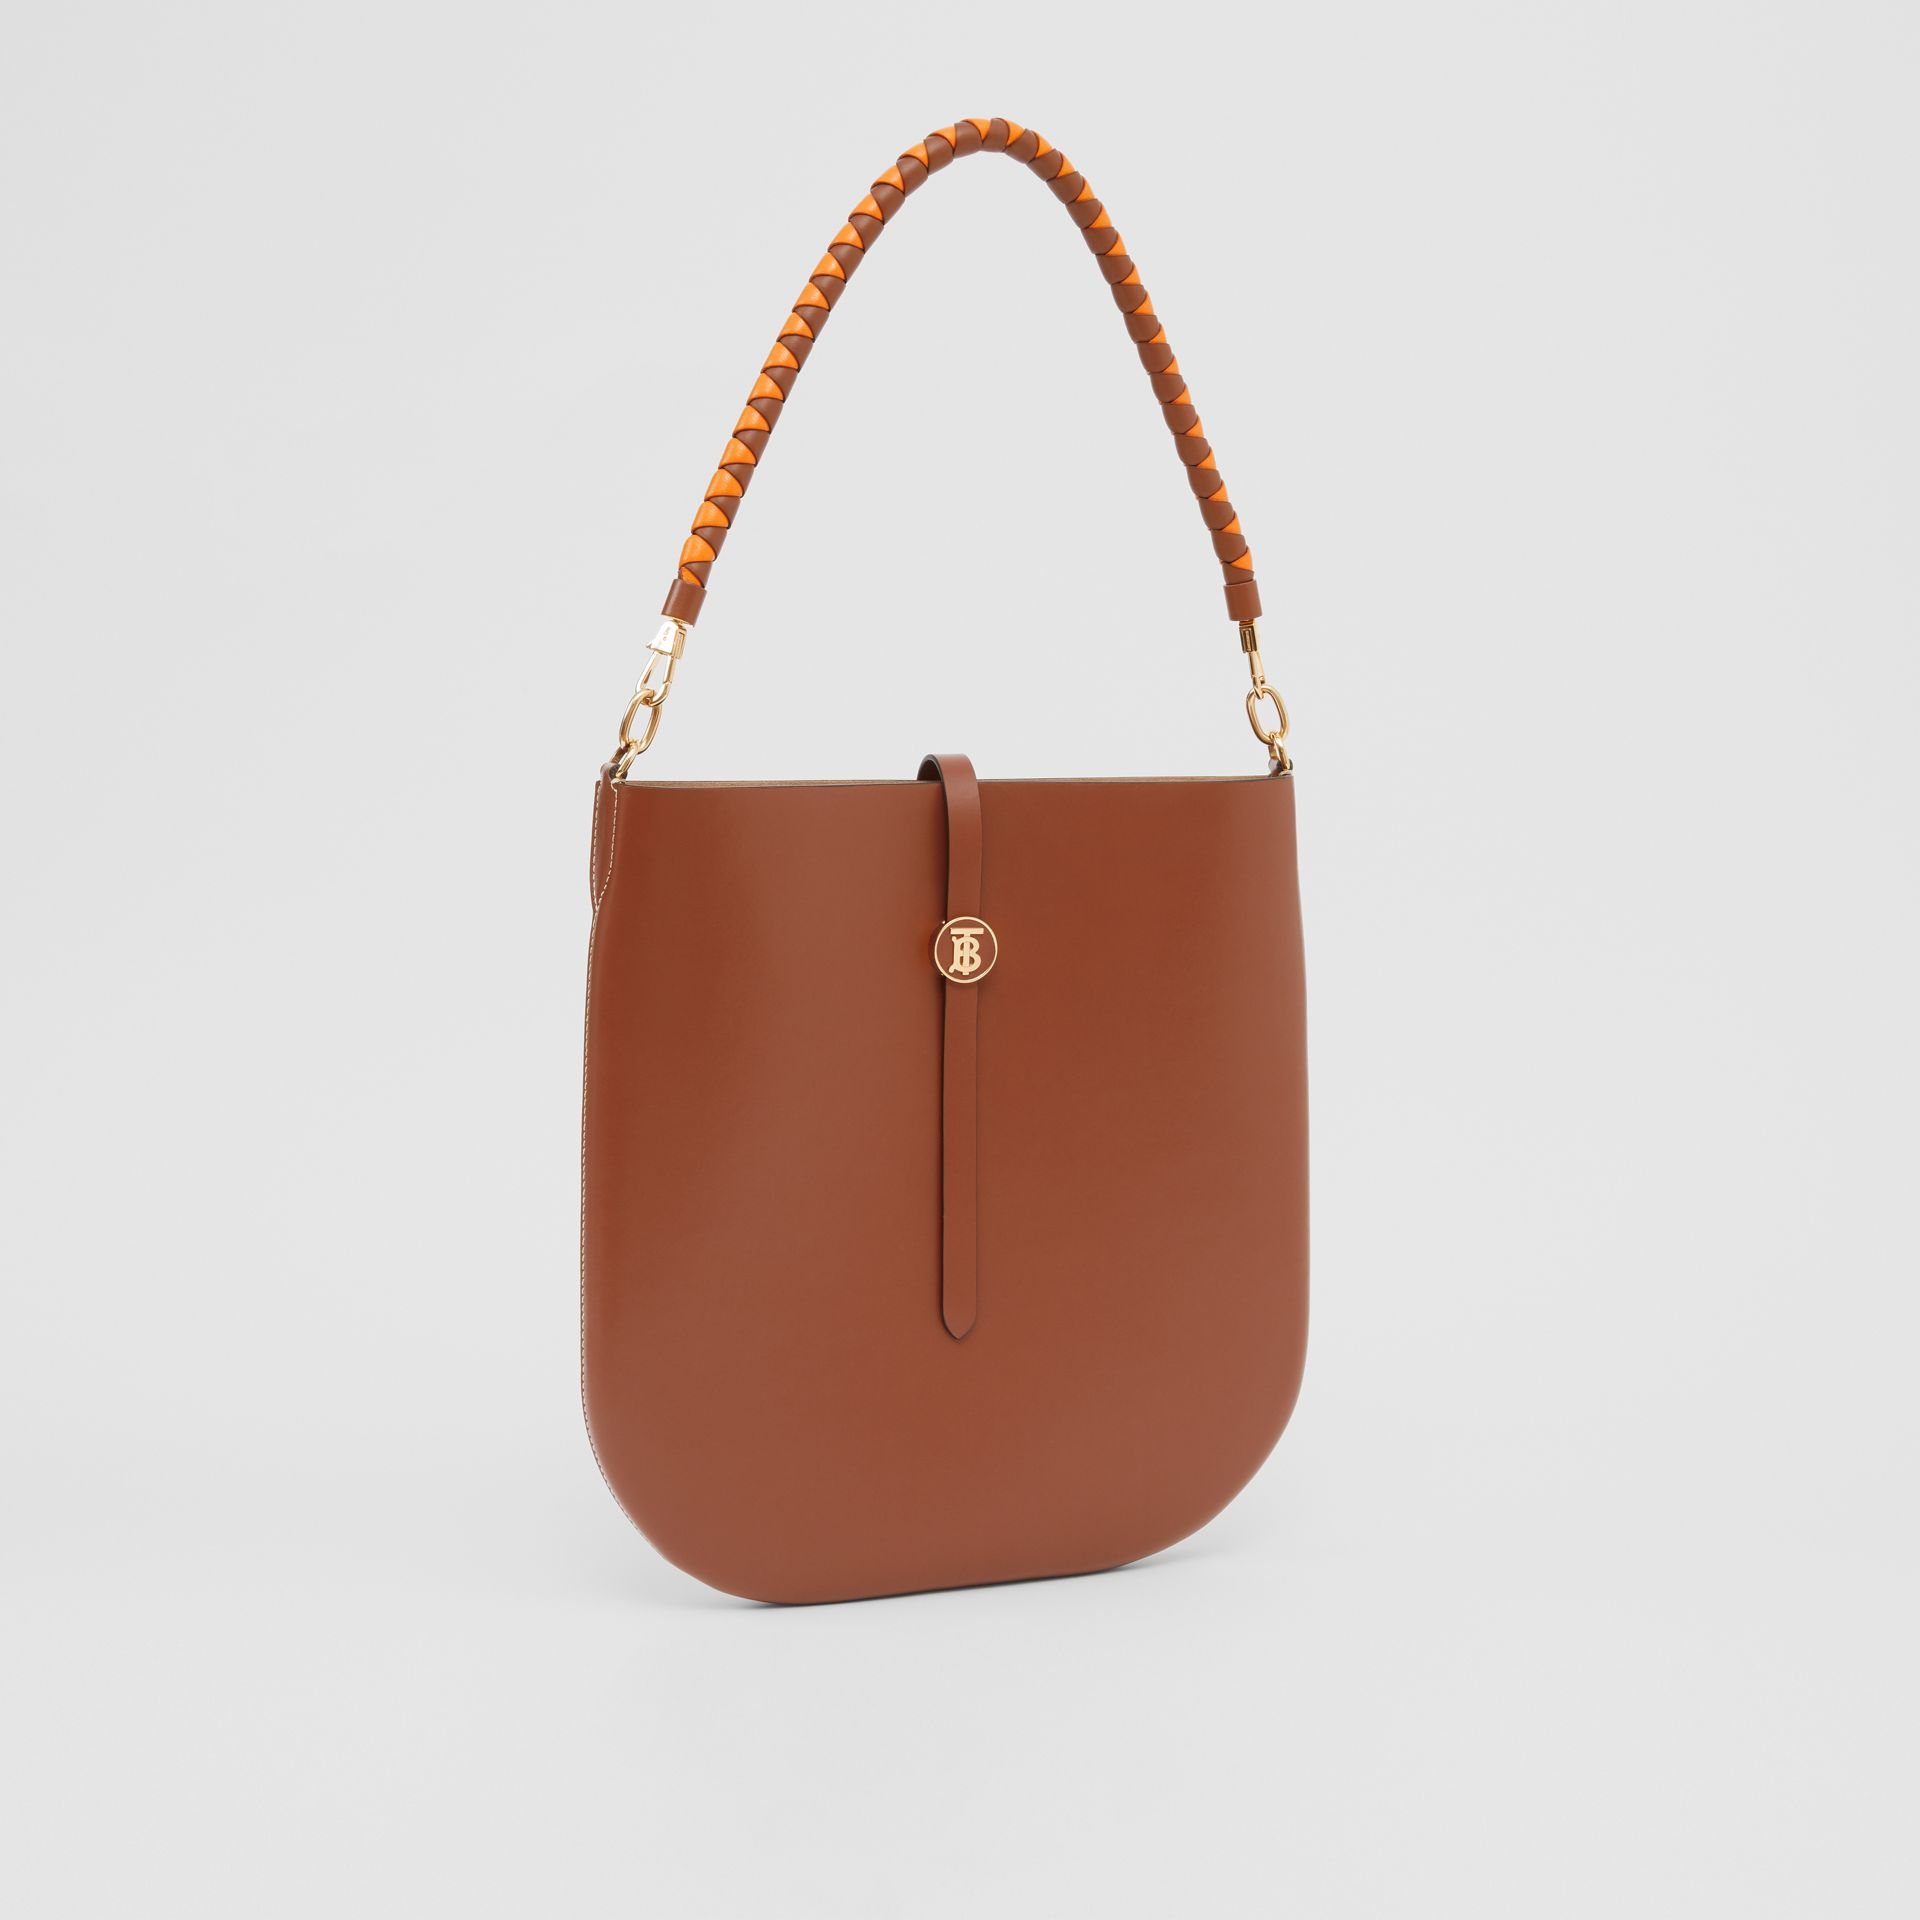 Leather Anne Bag in Tan - Women | Burberry - gallery image 6